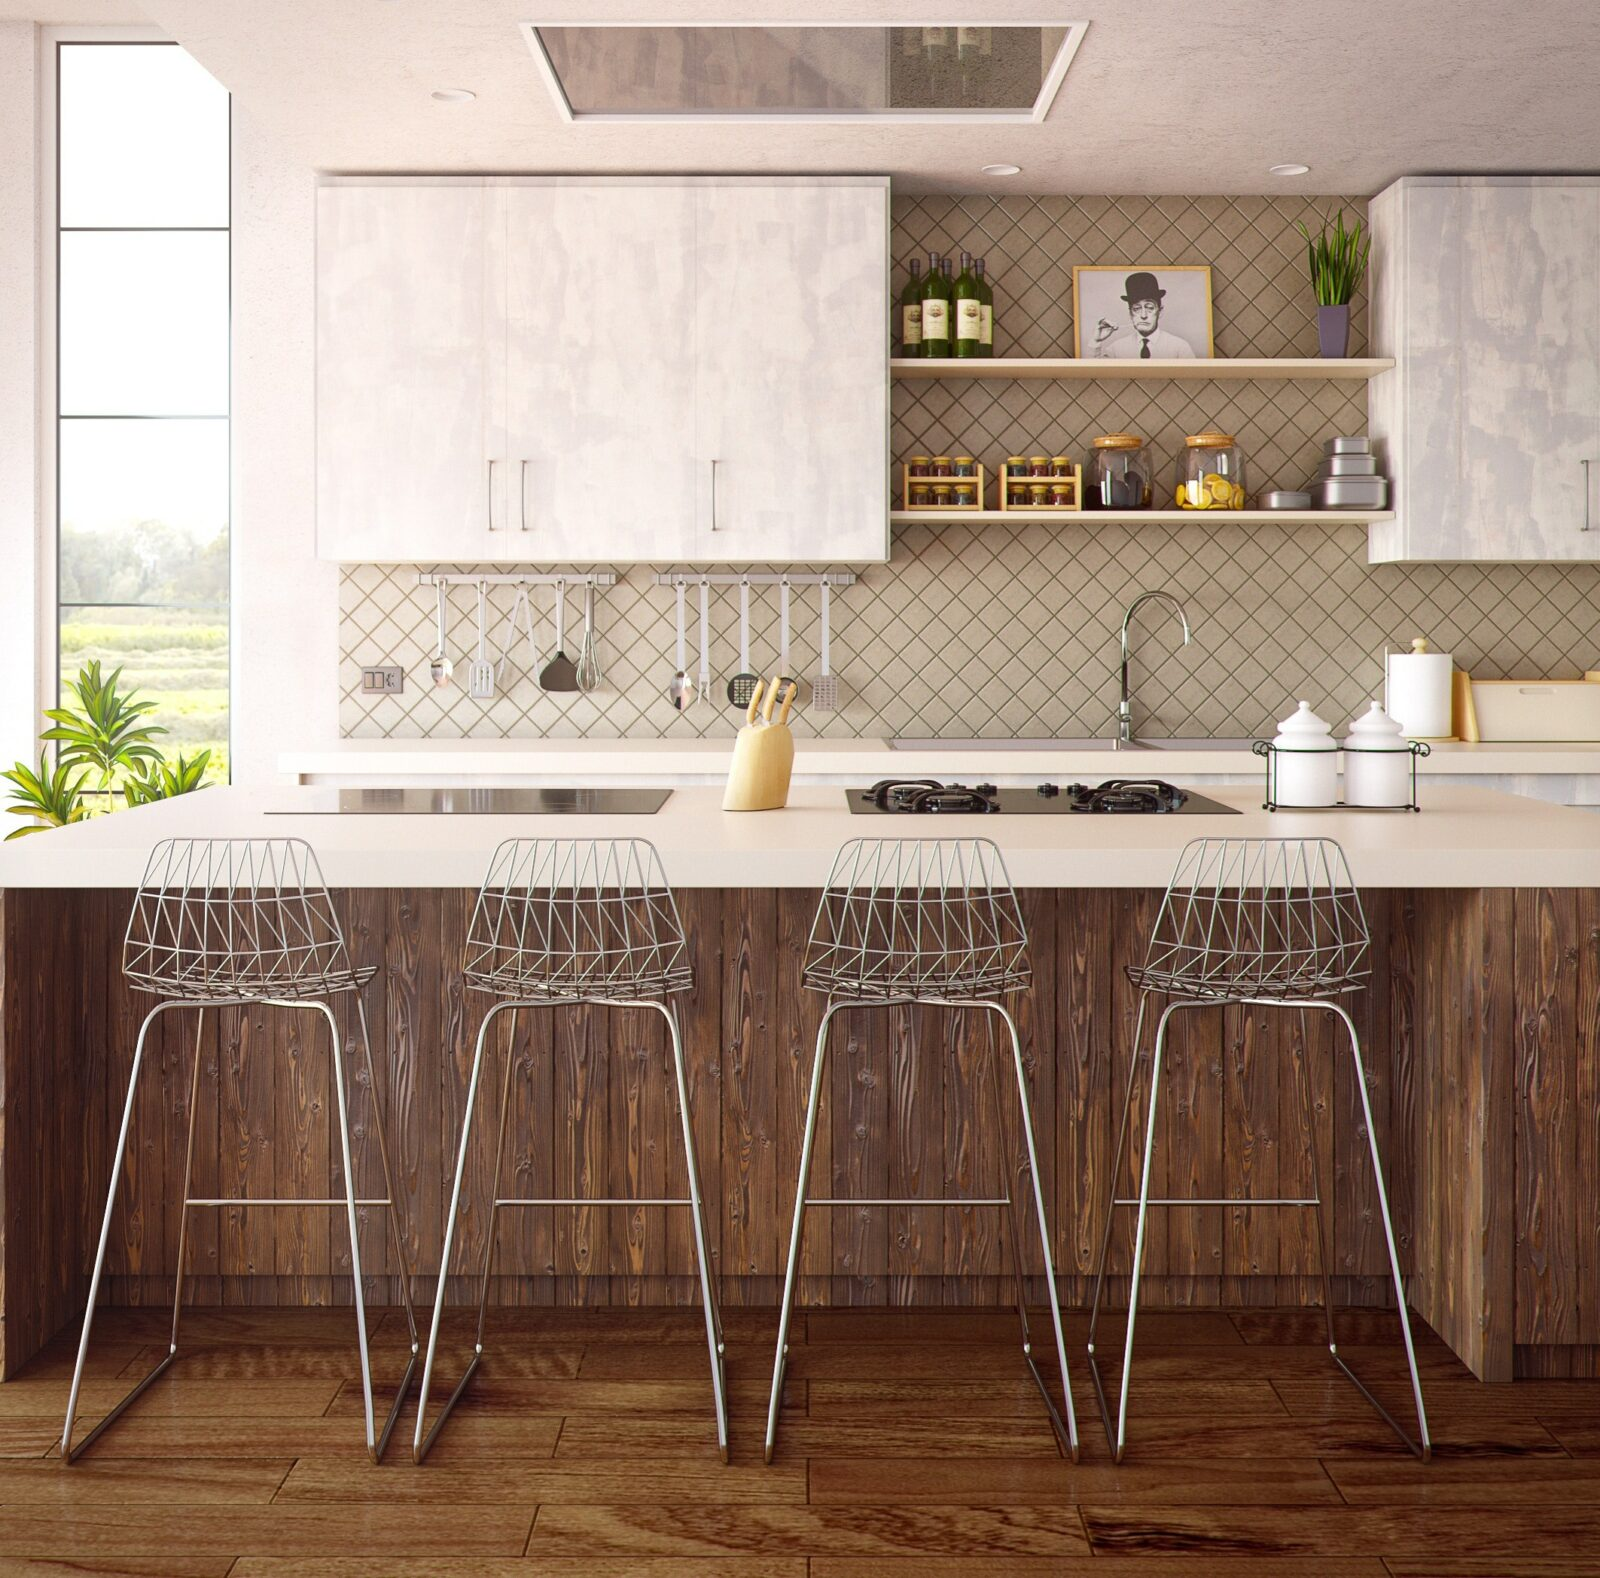 wire chairs sit at a breakfast bar in a staged chef's kitchen